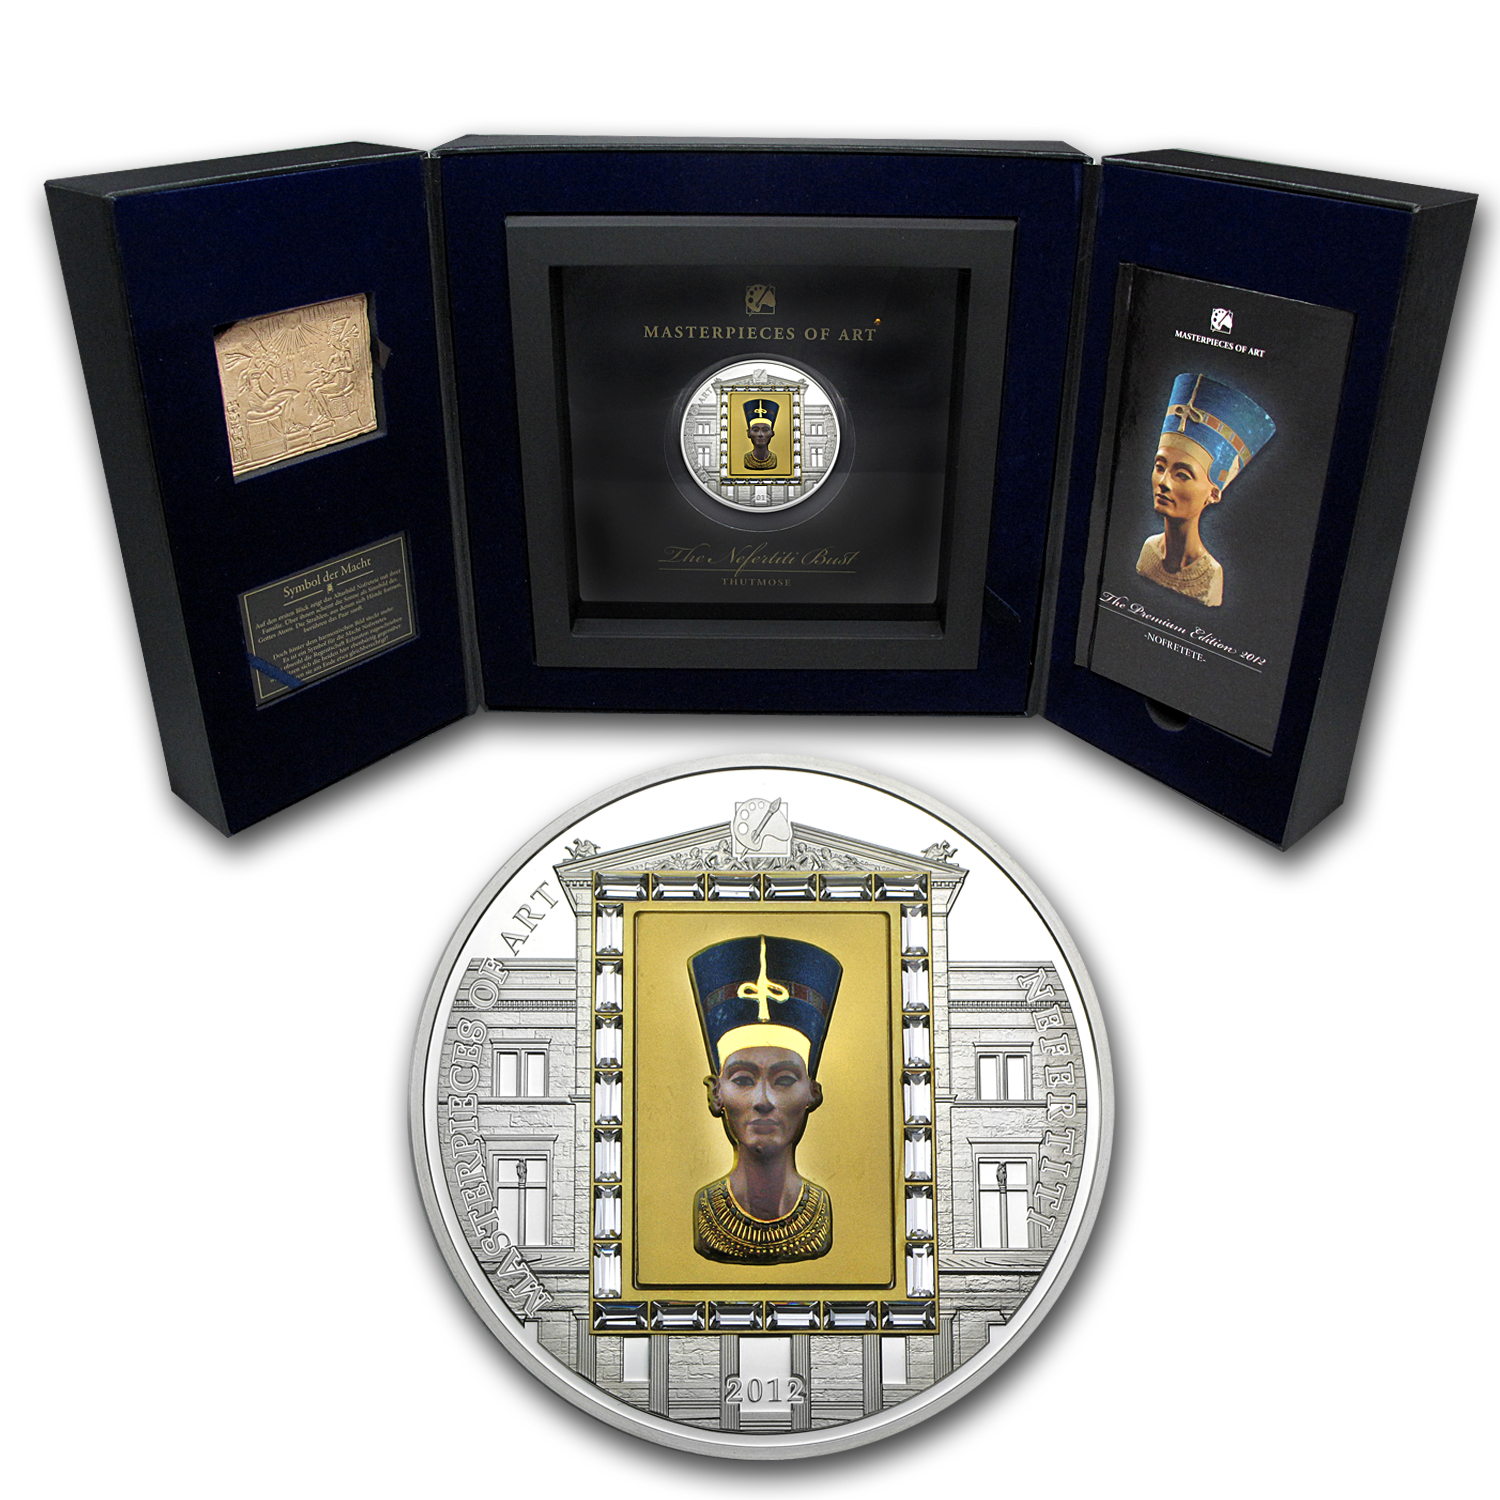 2012 Cook Islands Gold & Silver $20 Nefertiti Premium Edition